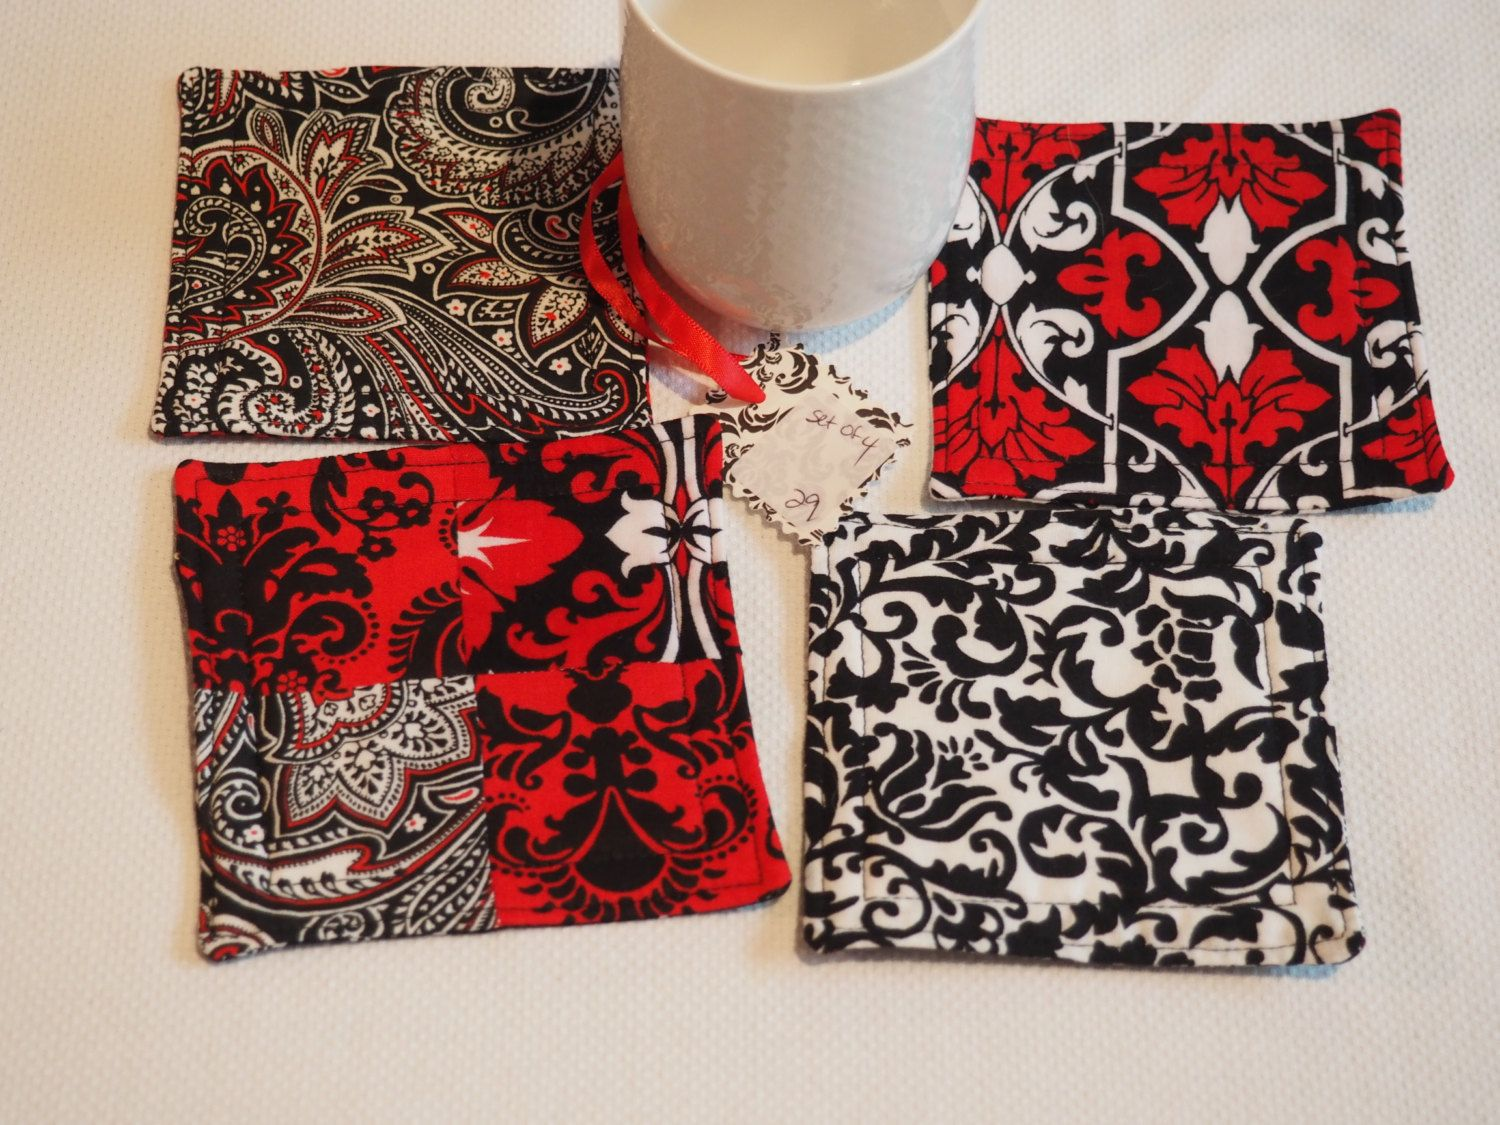 Red and black floral drink coasters, set of 4, handmade by AuntTerrysCreations on Etsy